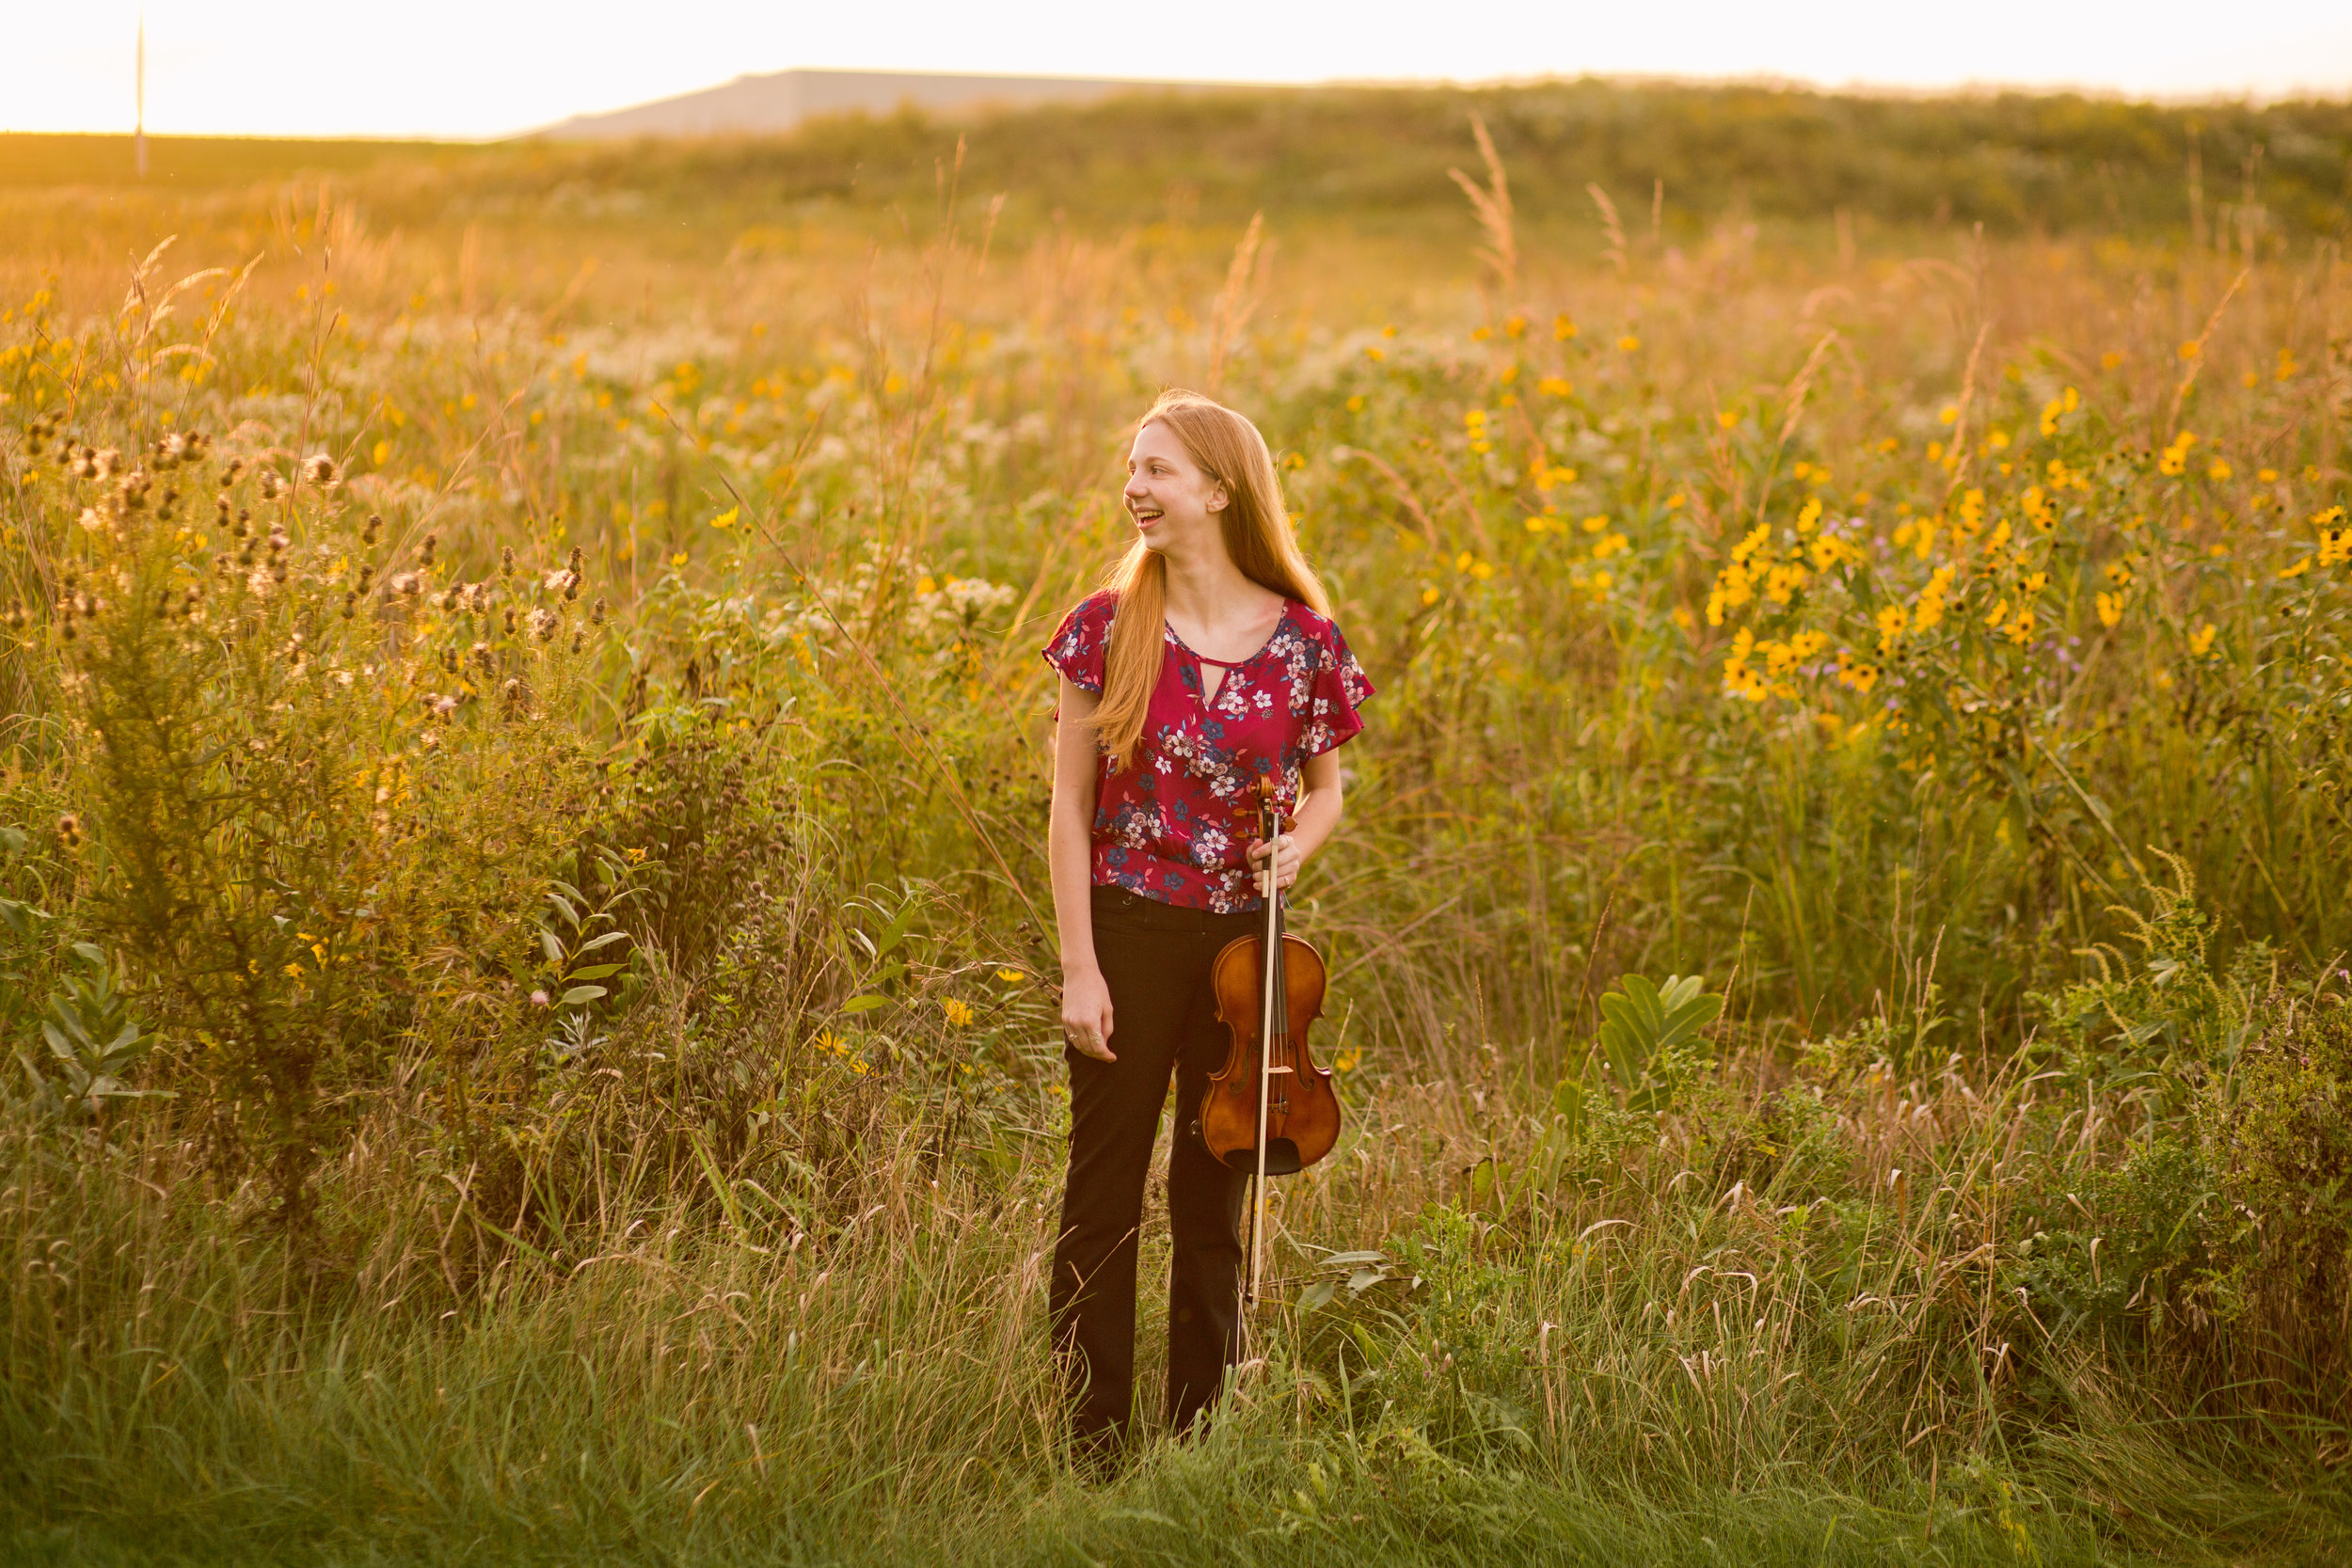 waukee senior high school senior photos . girl in field with violin at sunset wearing pink floral shirt